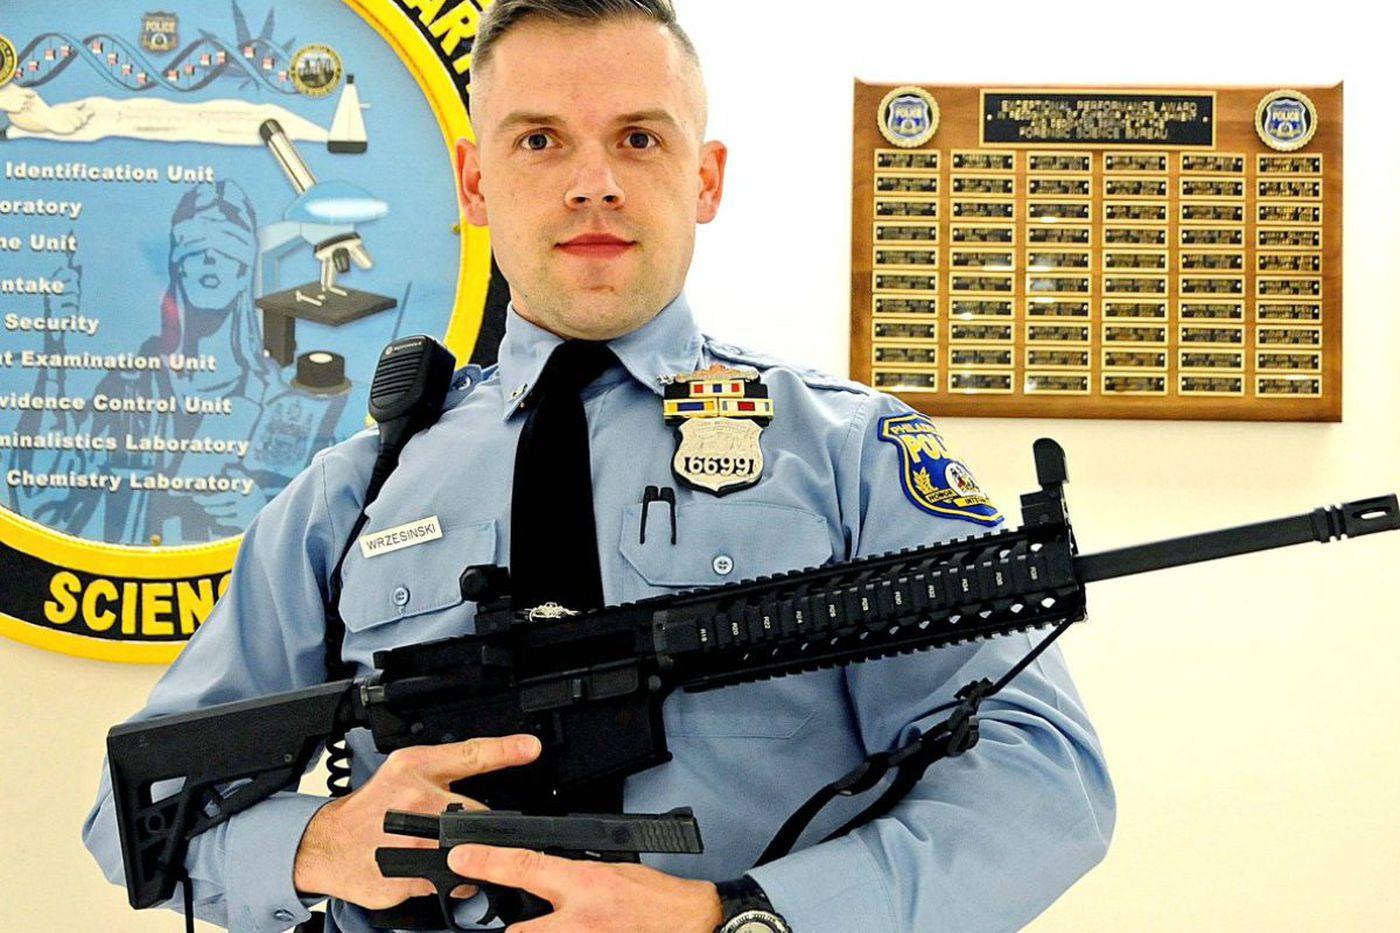 How the 12-year-old Northeast Philly boy ended up toting an assault-style rifle